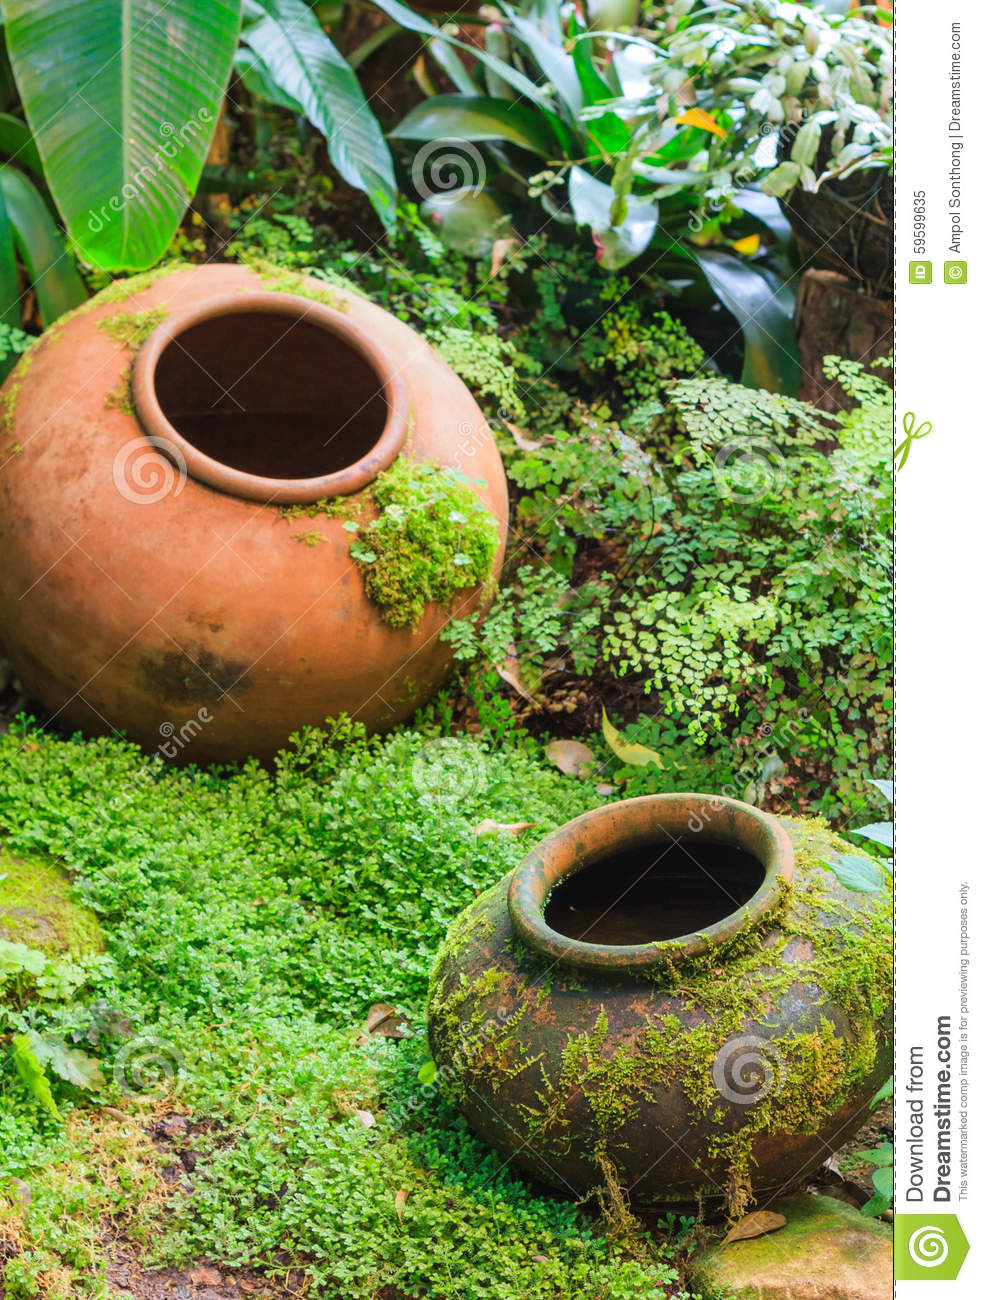 earthen jar tropical garden decoration stock photo - image: 59599635